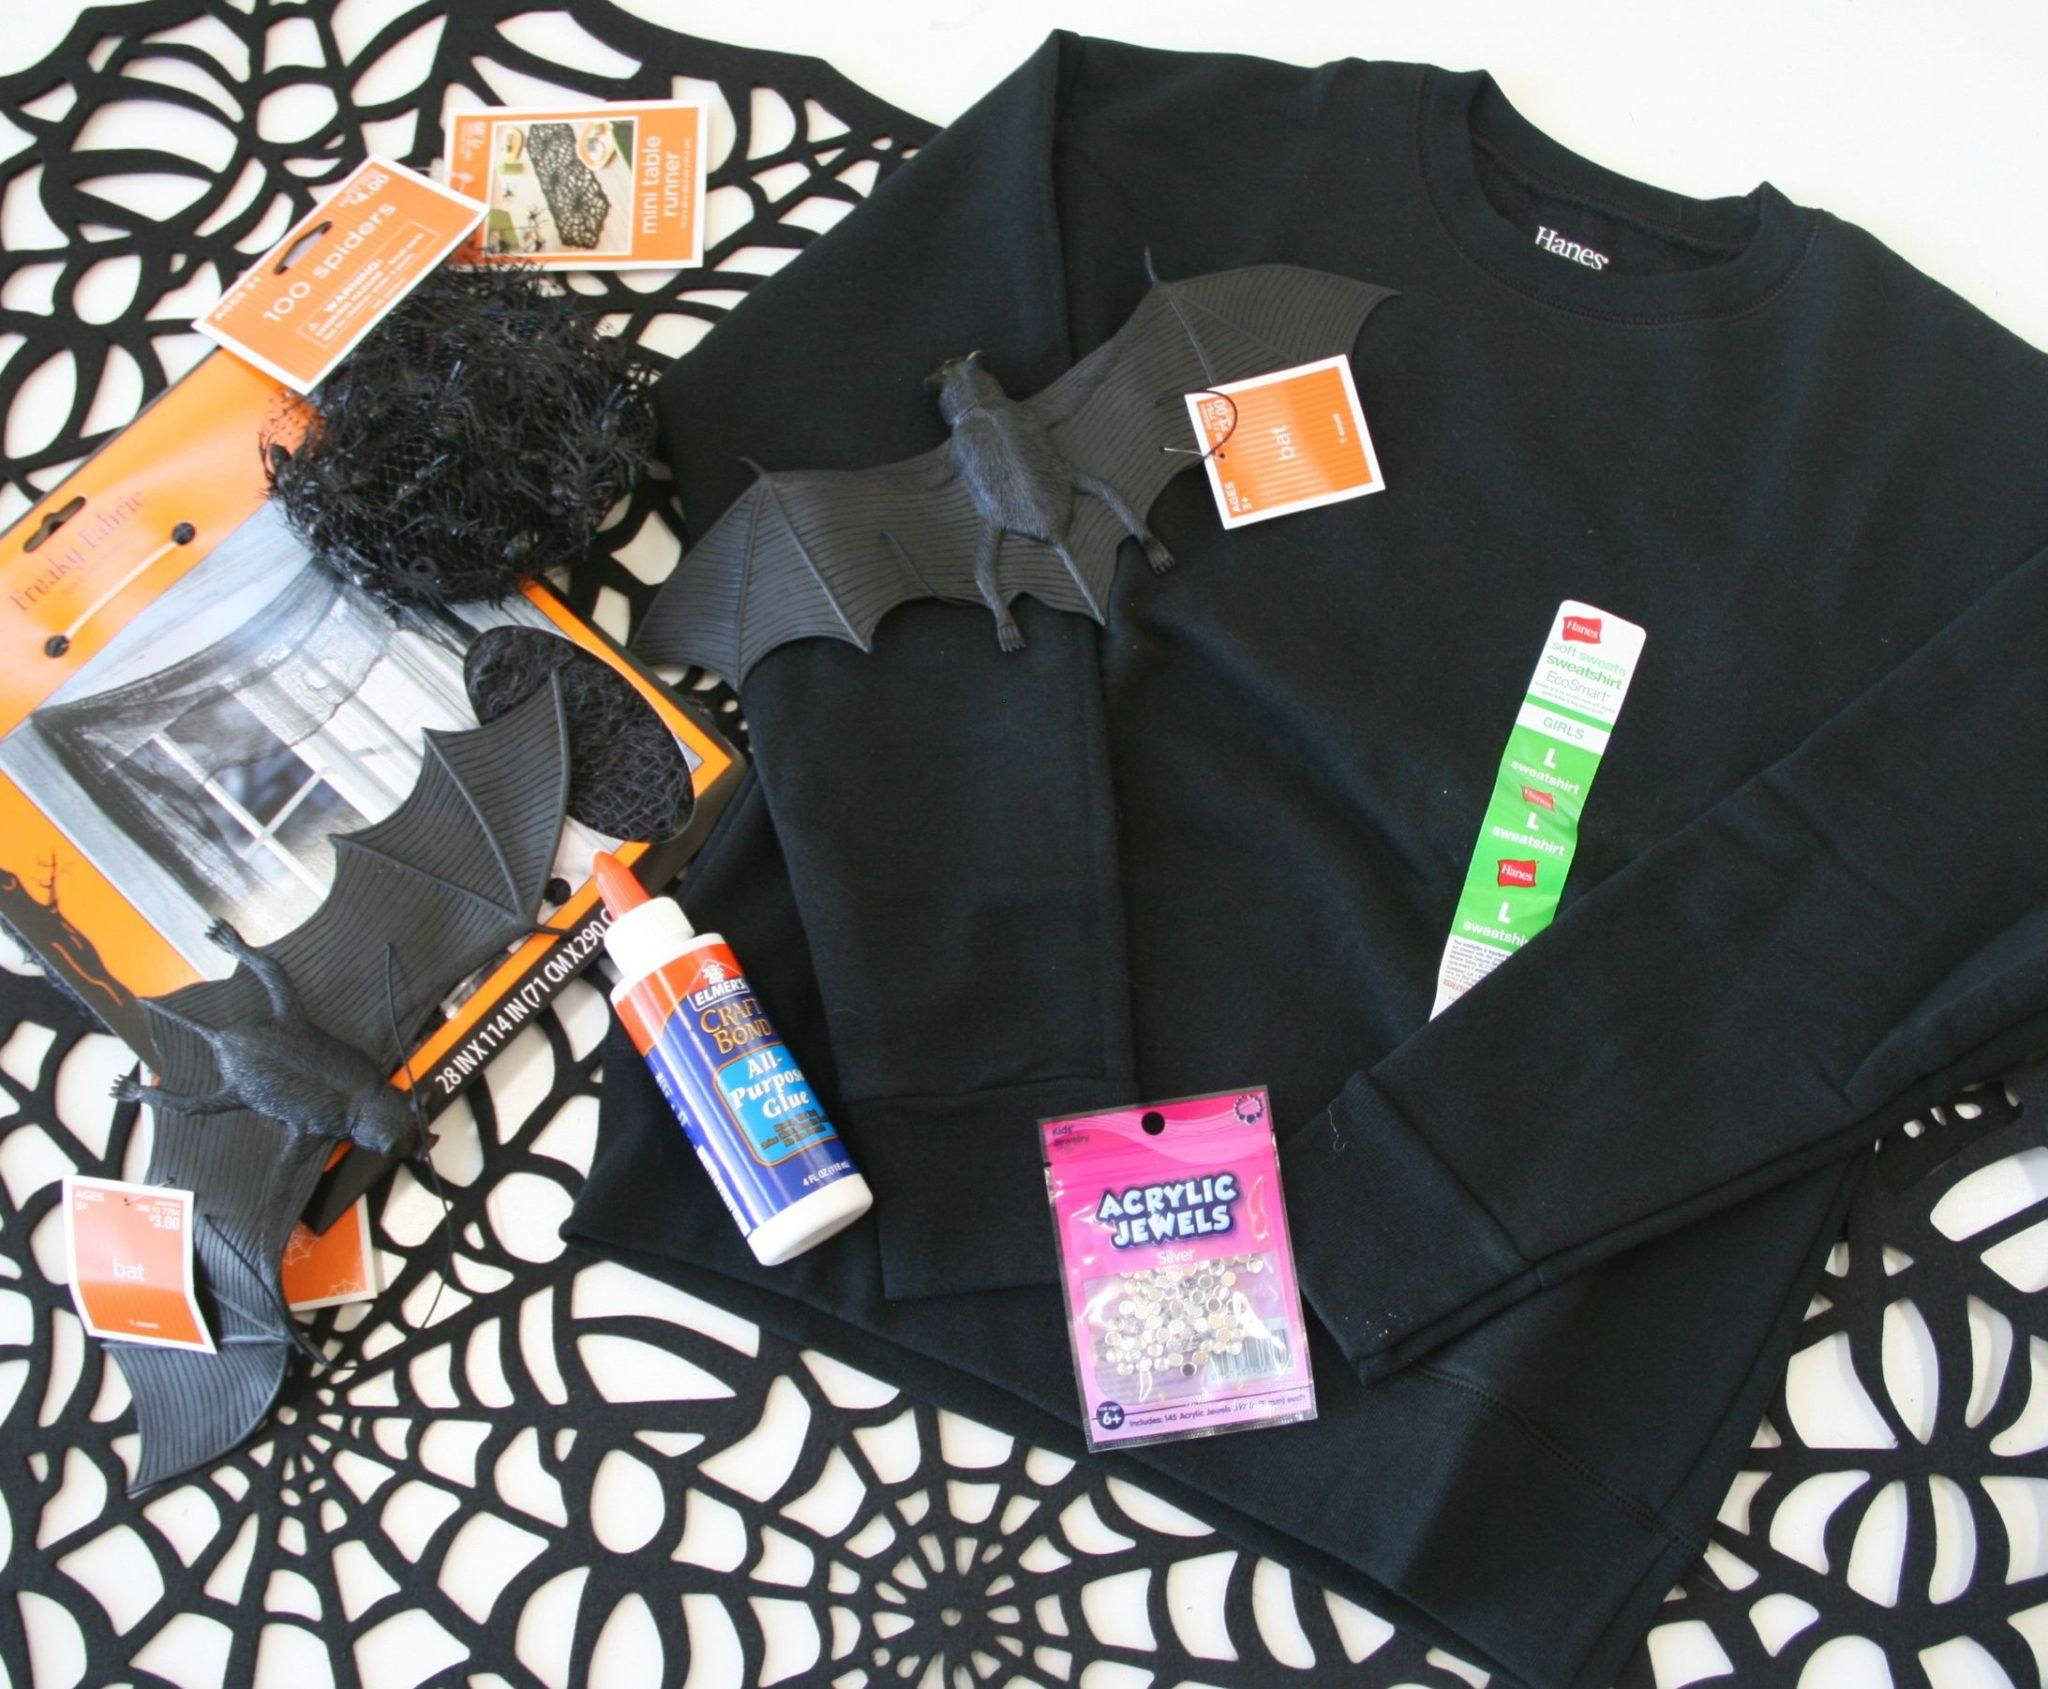 DIY halloween costume supplies, target, walmart, hanes